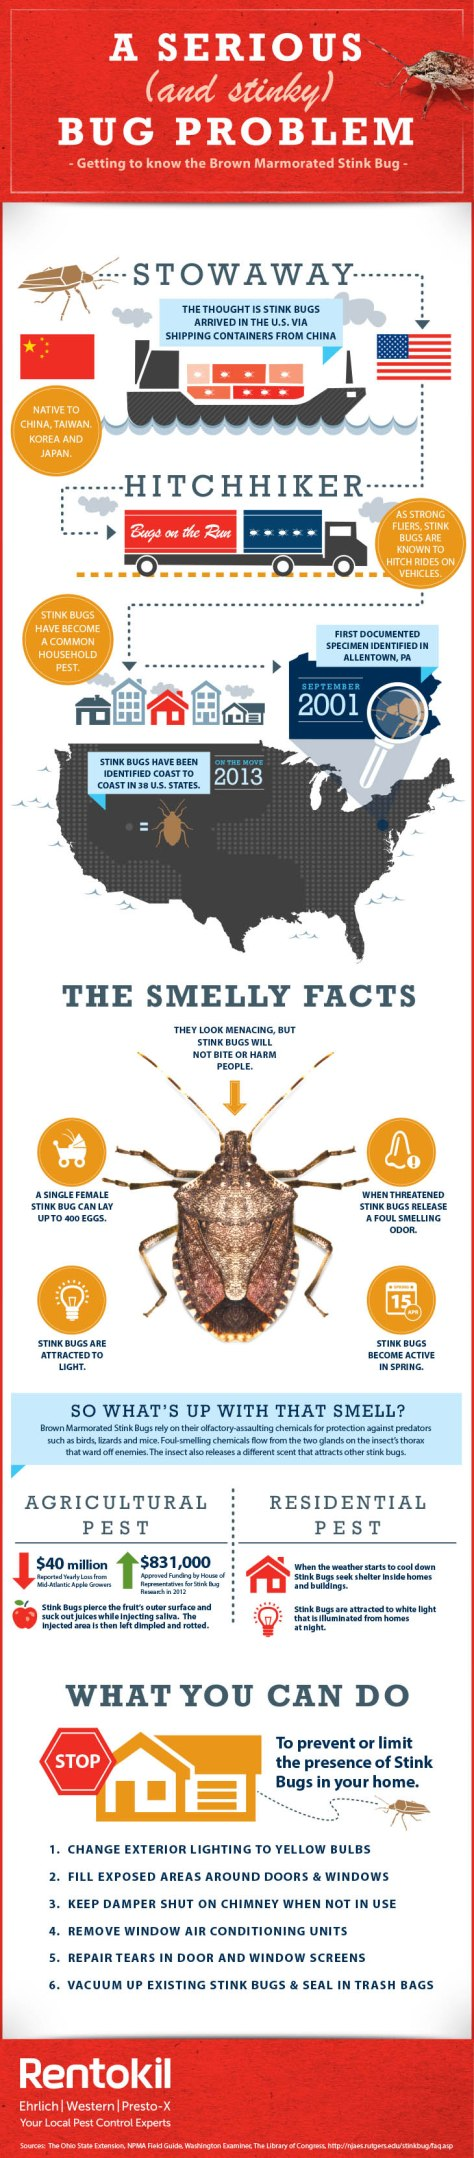 getting-to-know-the-brown-marmorated-stink-bug_5255ad7921cc9